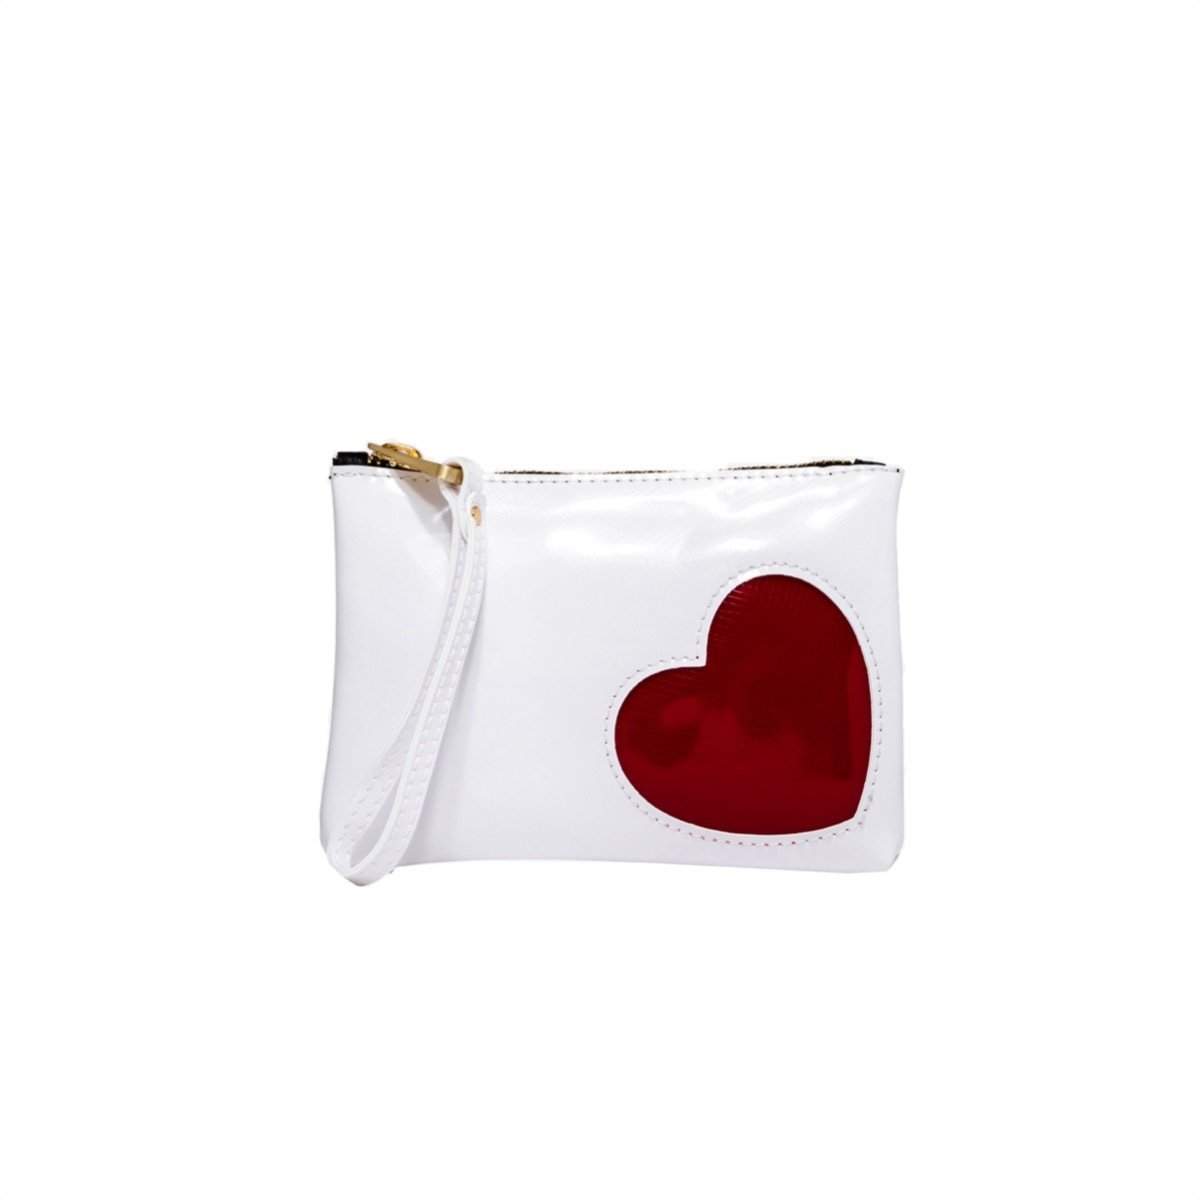 GUM - Numbers Glossy Heart S - Variante White